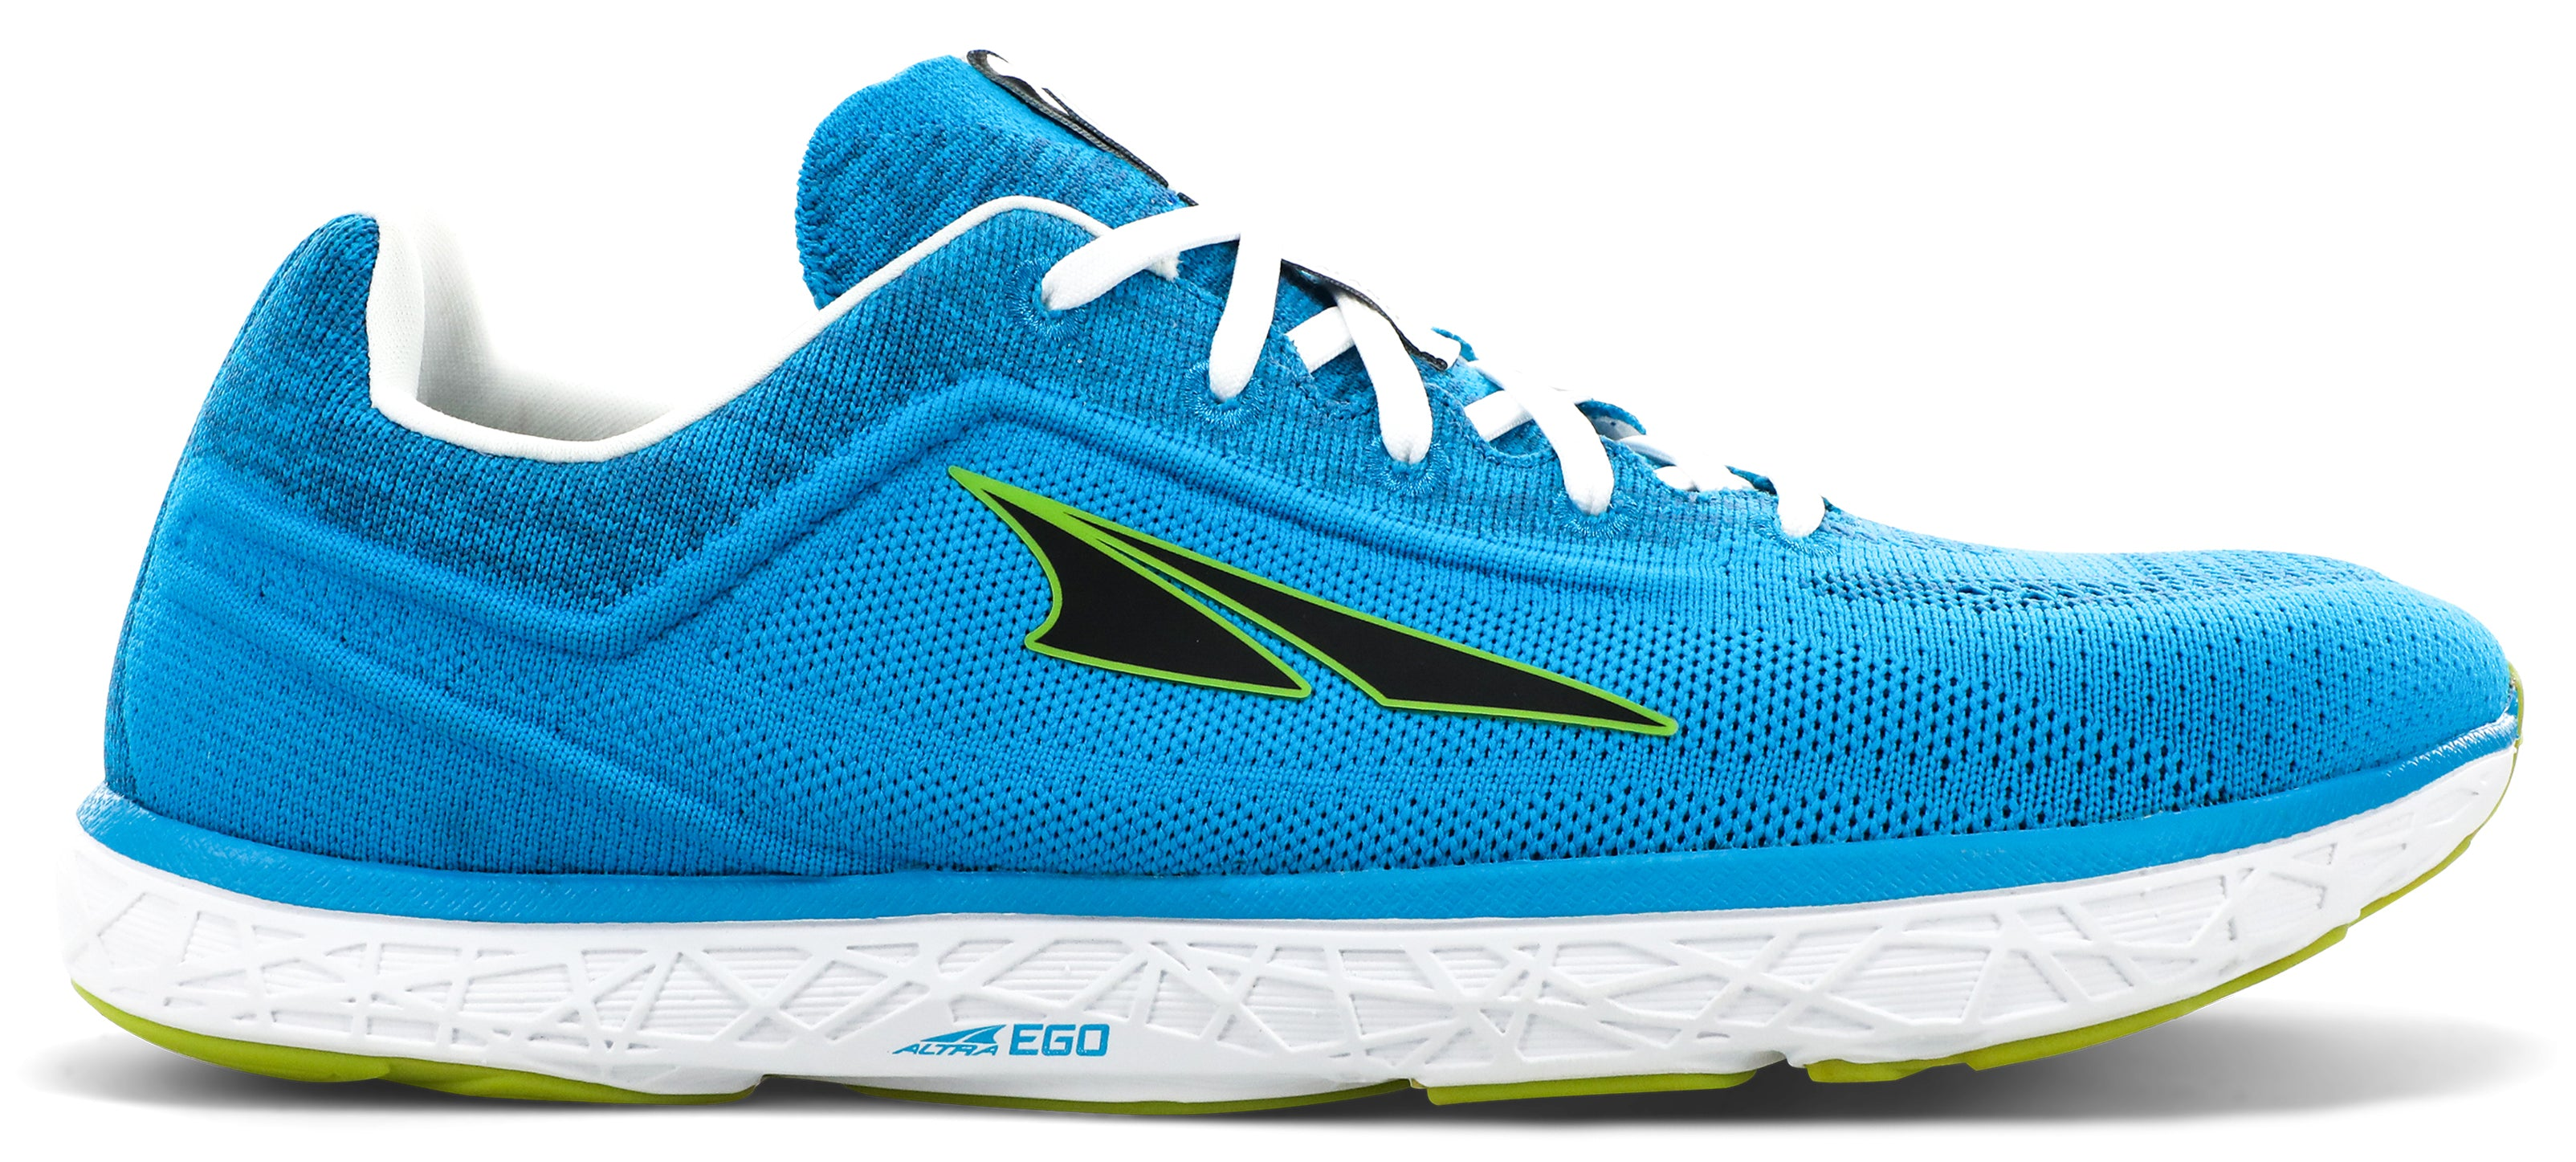 Altra Men's Escalante 2.5 Road Running Shoe in Blue/Lime from the side